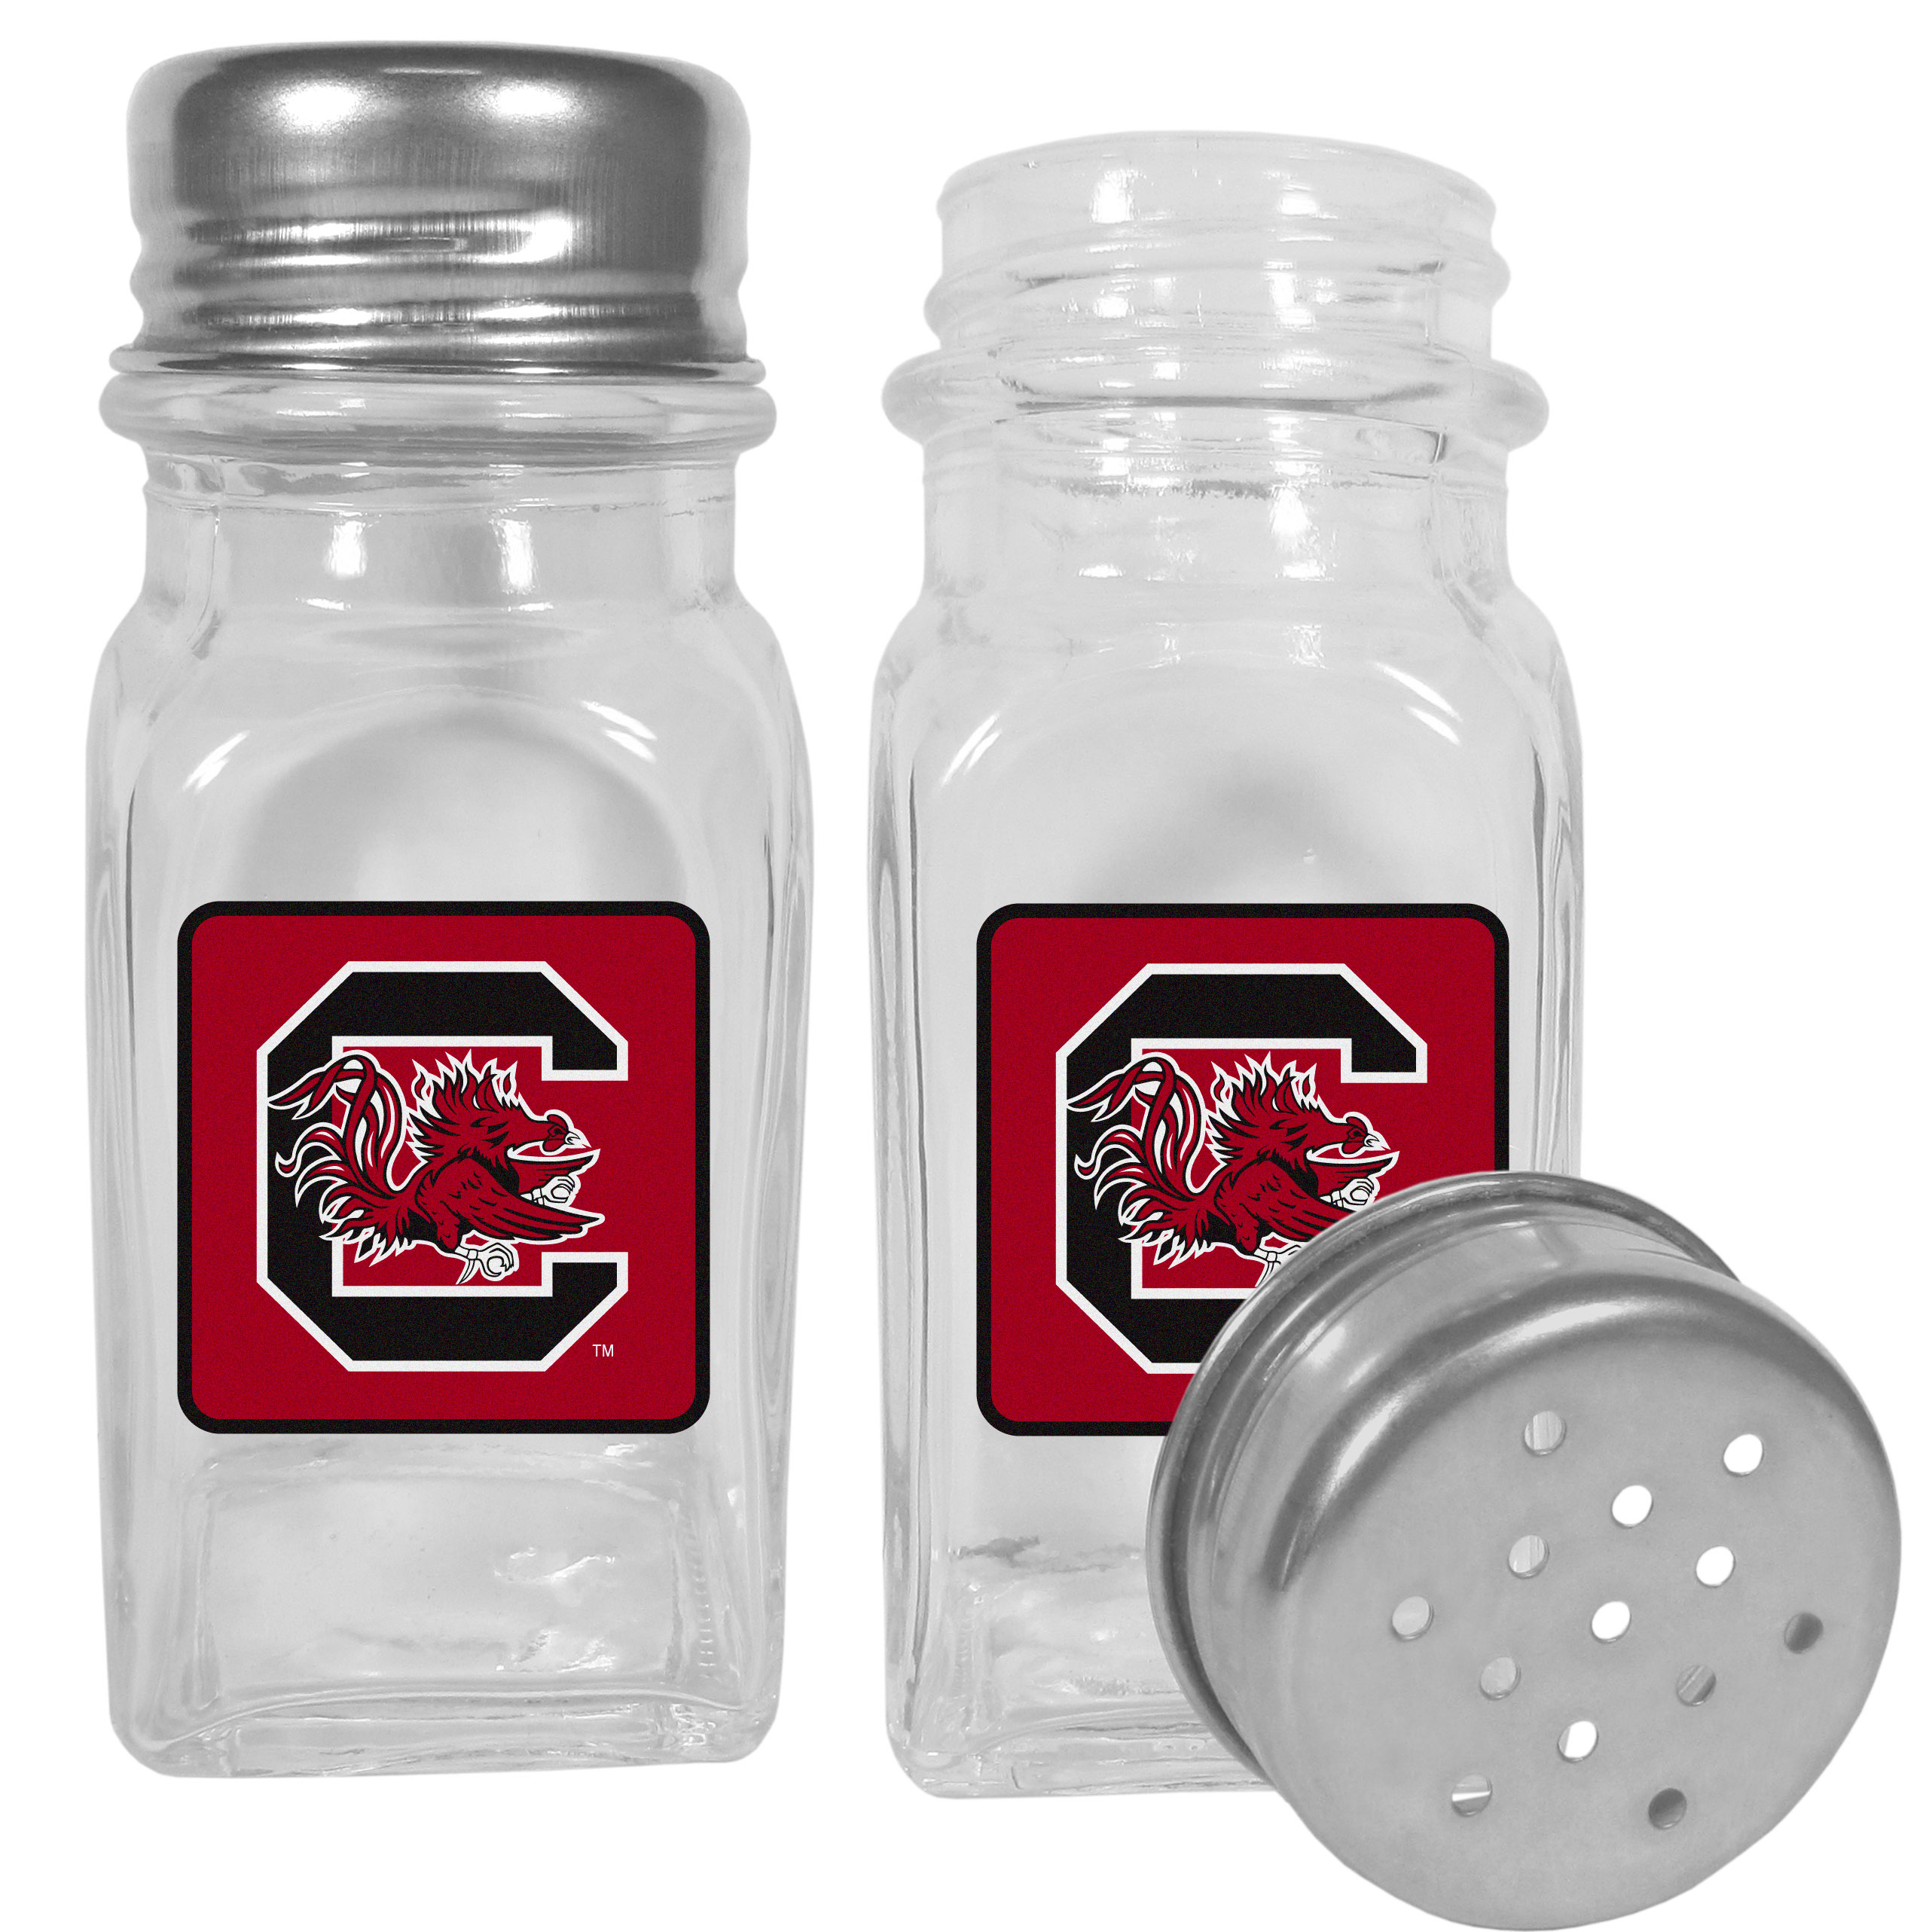 S. Carolina Gamecocks Graphics Salt & Pepper Shaker - No tailgate party is complete without your S. Carolina Gamecocks salt & pepper shakers featuring bright team logos. The diner replica salt and pepper shakers are glass with screw top lids. These team shakers are a great grill accessory whether you are barbecuing on the patio, picnicing or having a game day party.